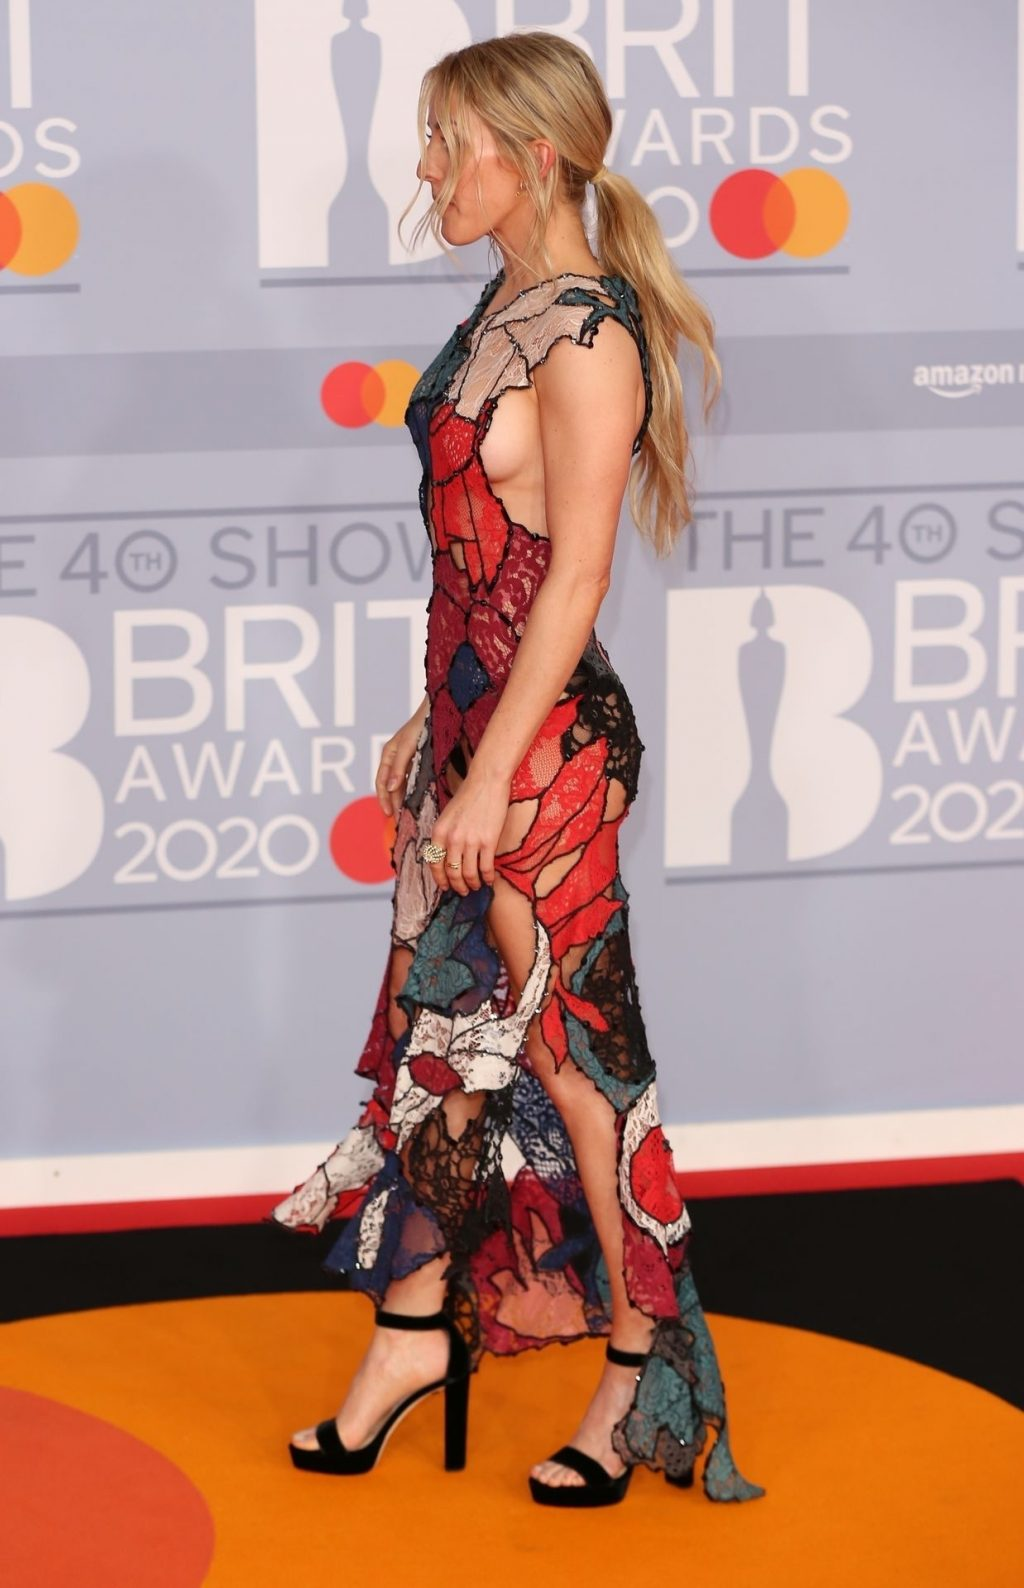 Ellie Goulding's Sideboob at The BRIT Awards (152 Photos)